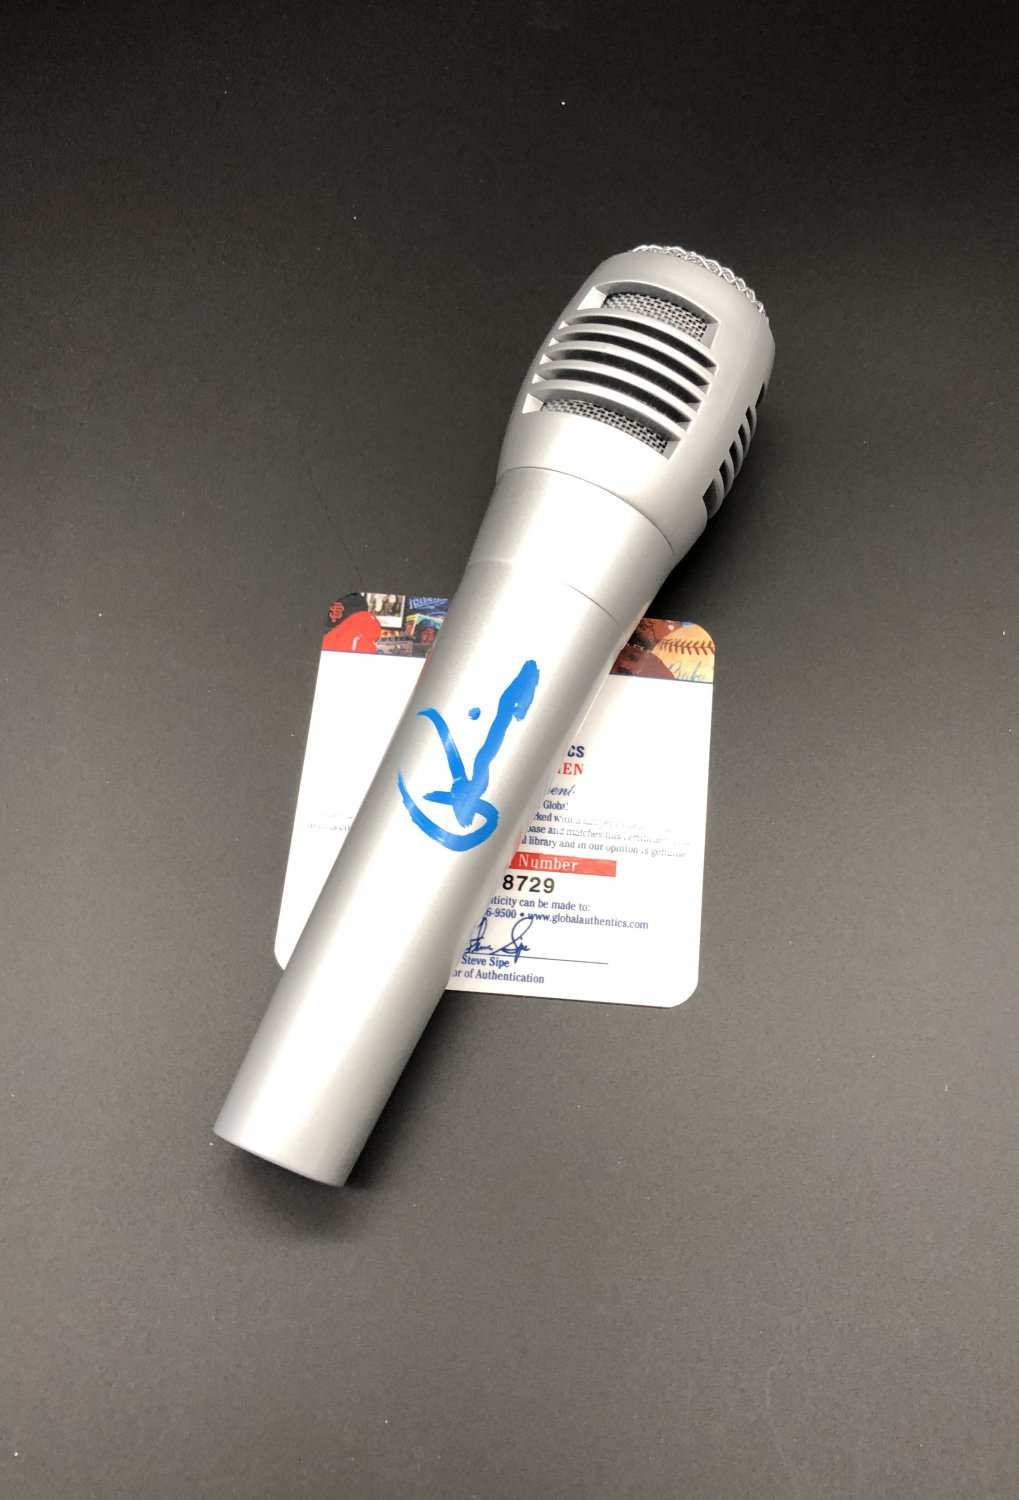 Rivers Cuomo Weezer Autographed Entertainment Microphone